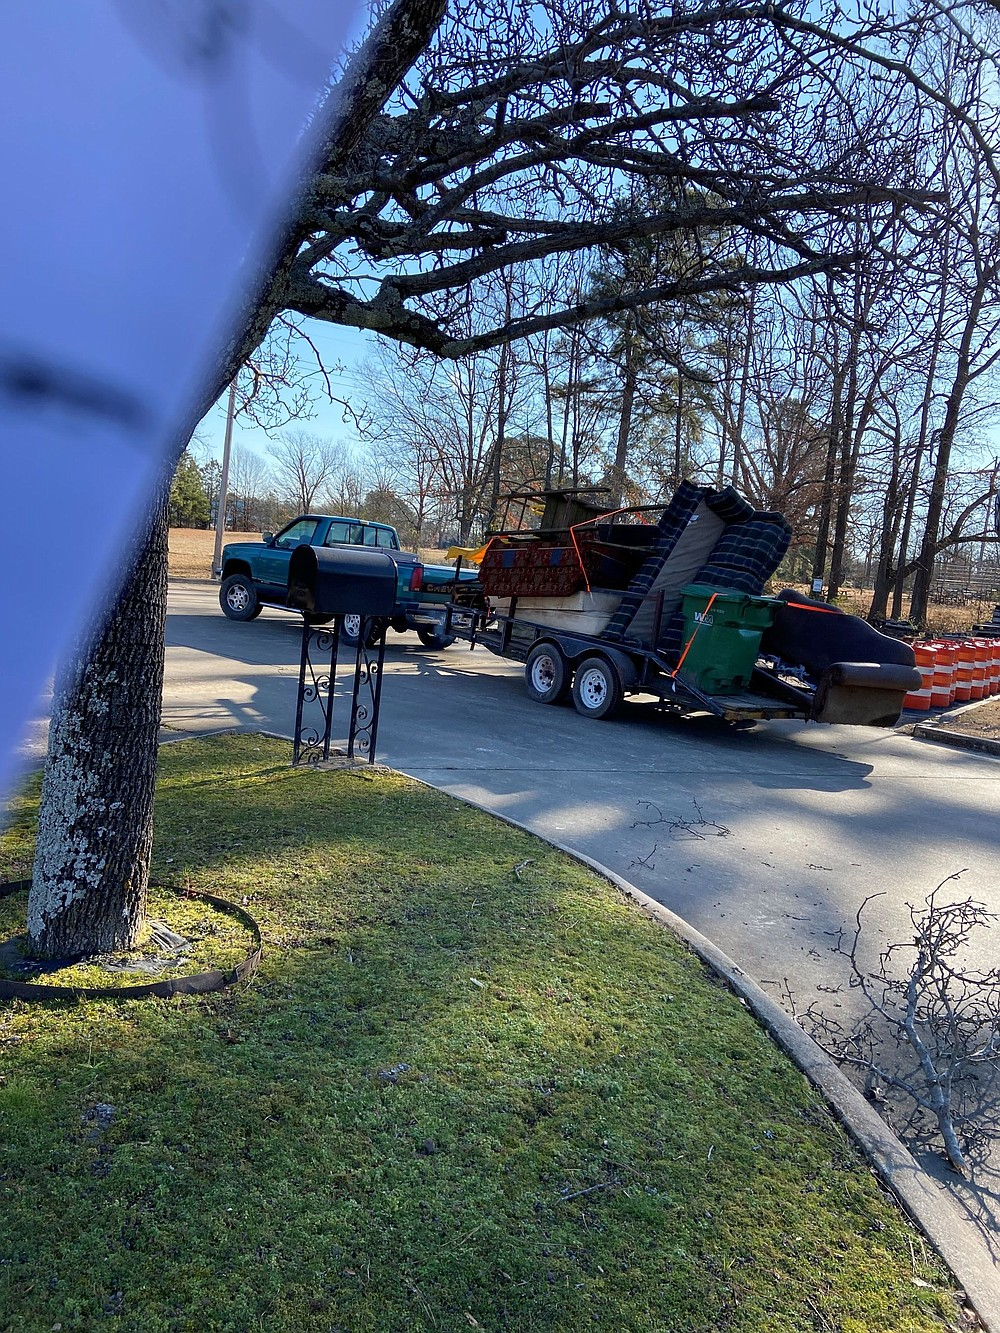 A truck and trailer are filled with debris and other furniture picked up Saturday morning as part of the cleanup. (Special to The Commercial/Deborah Horn)